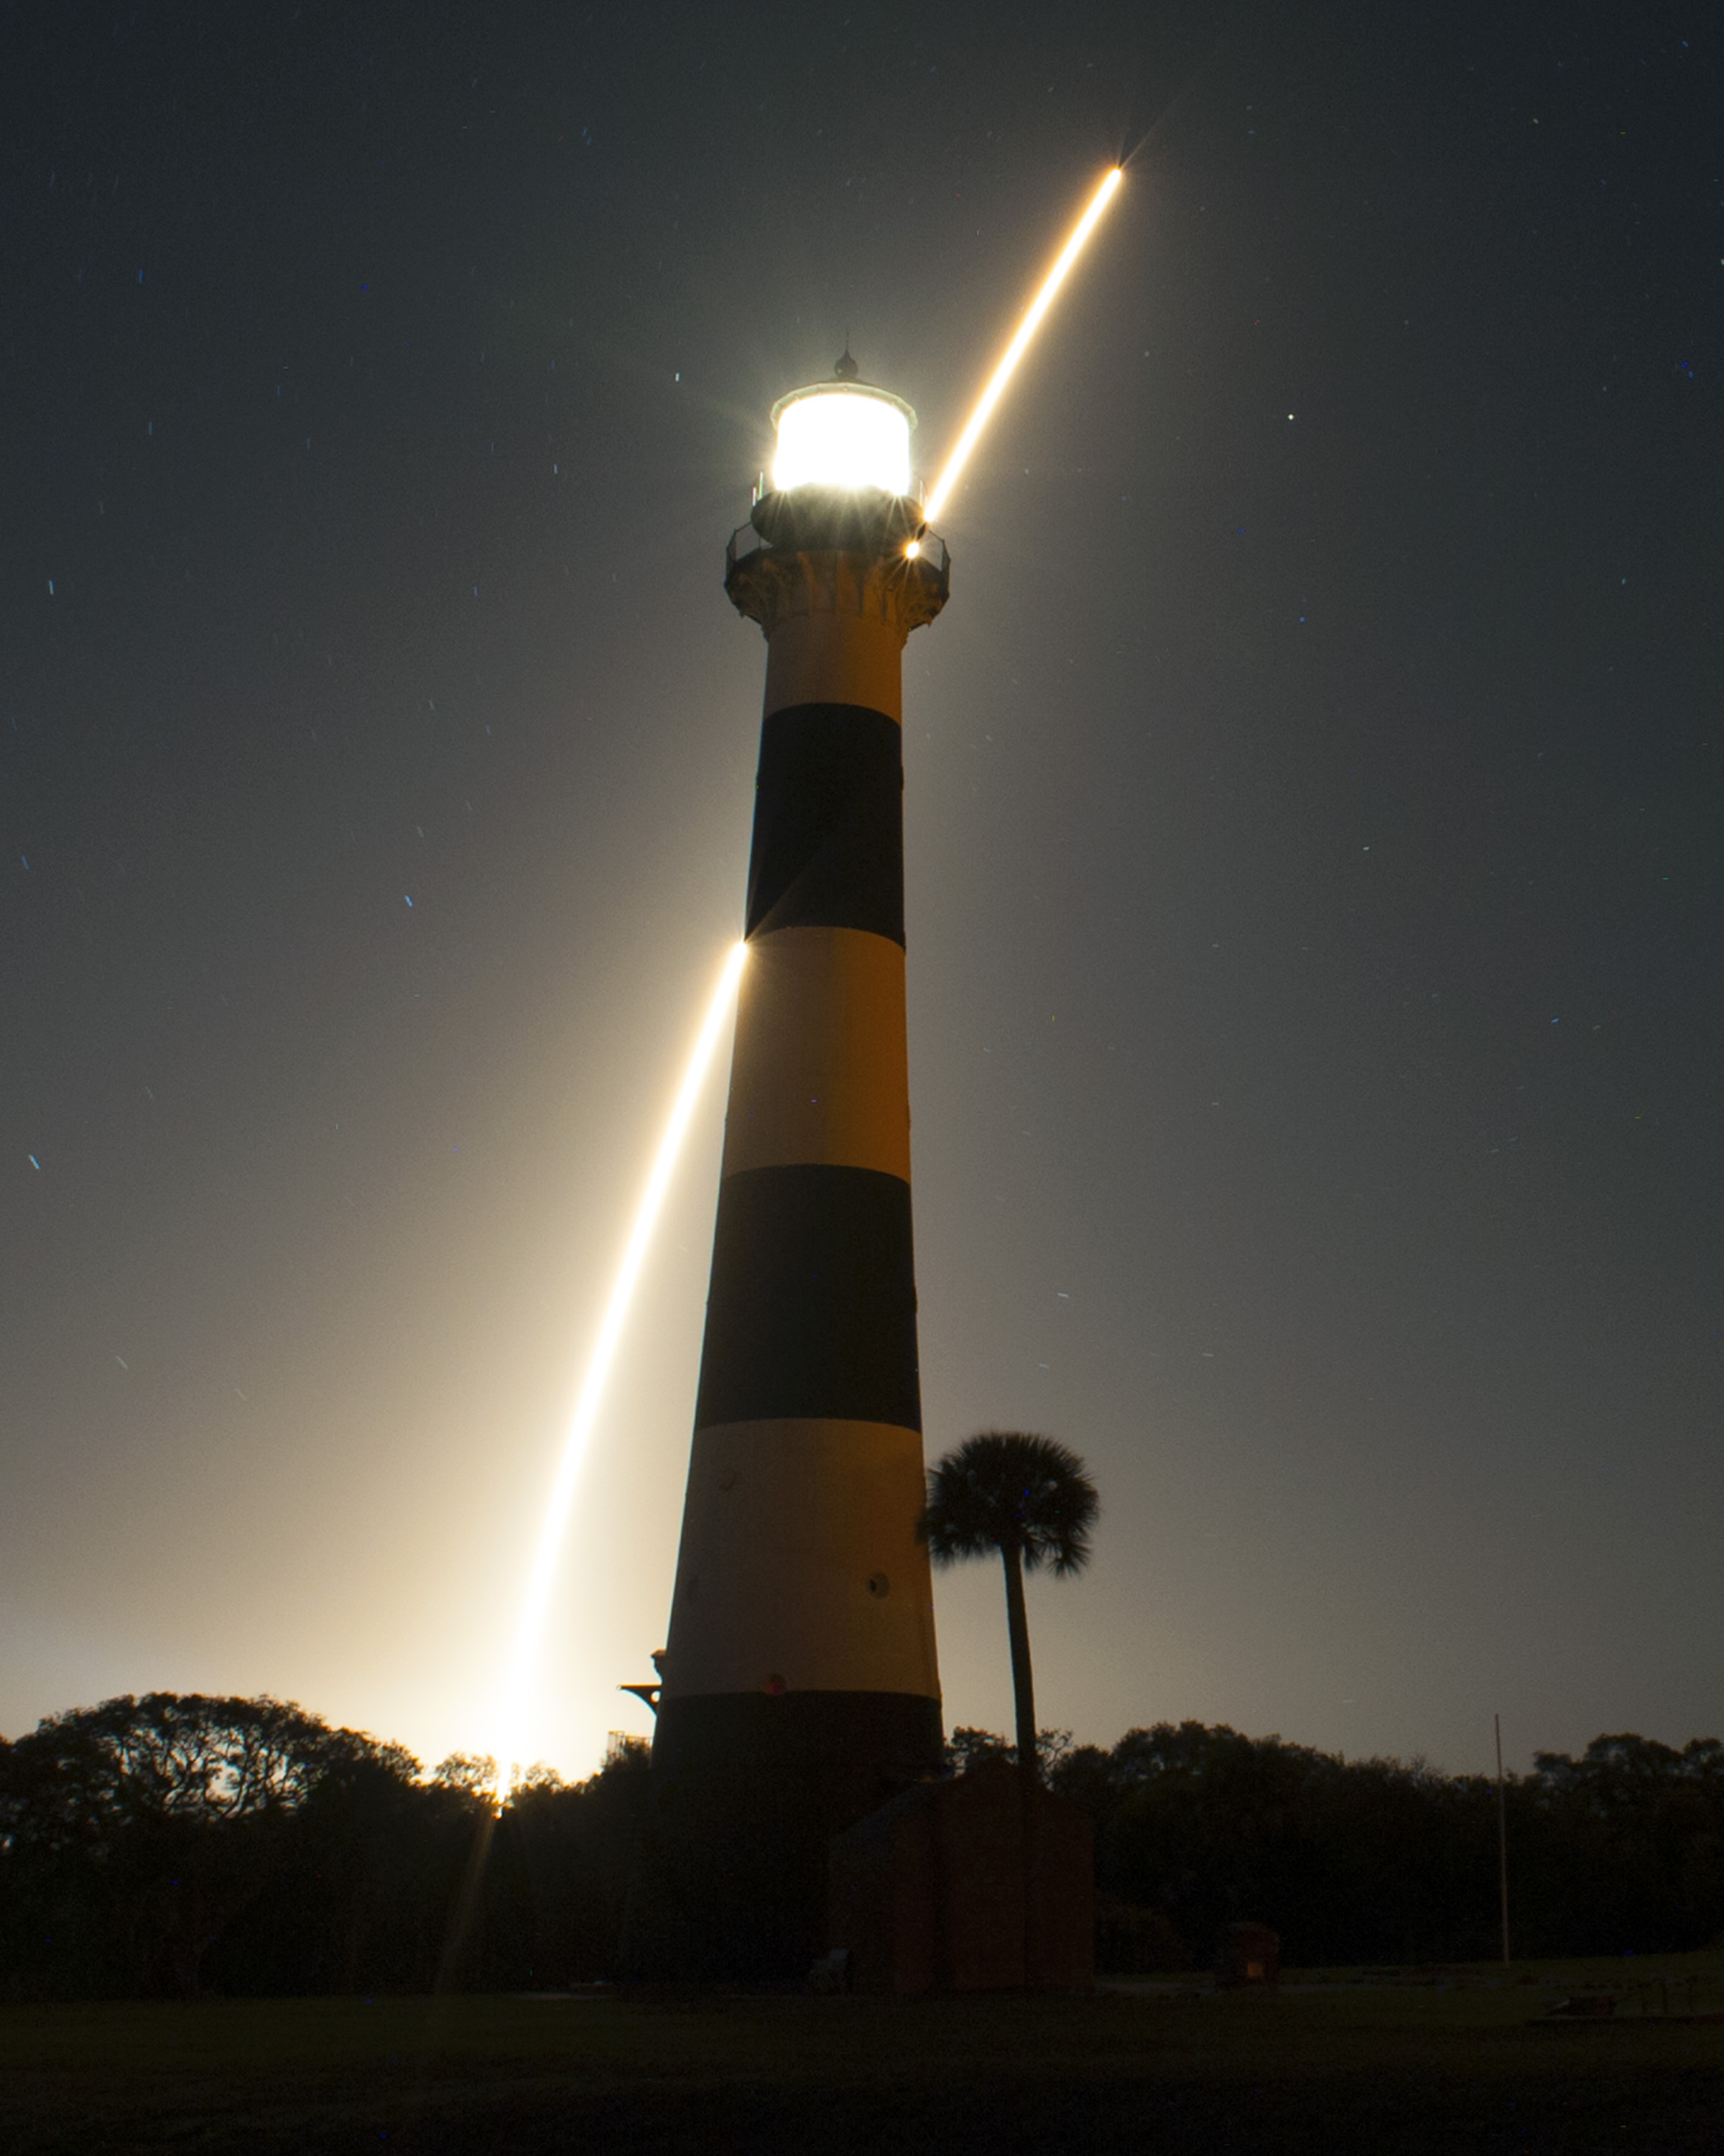 Atlas 5 Rocket Streaks and Lighthouse: TDRS-K Satellite